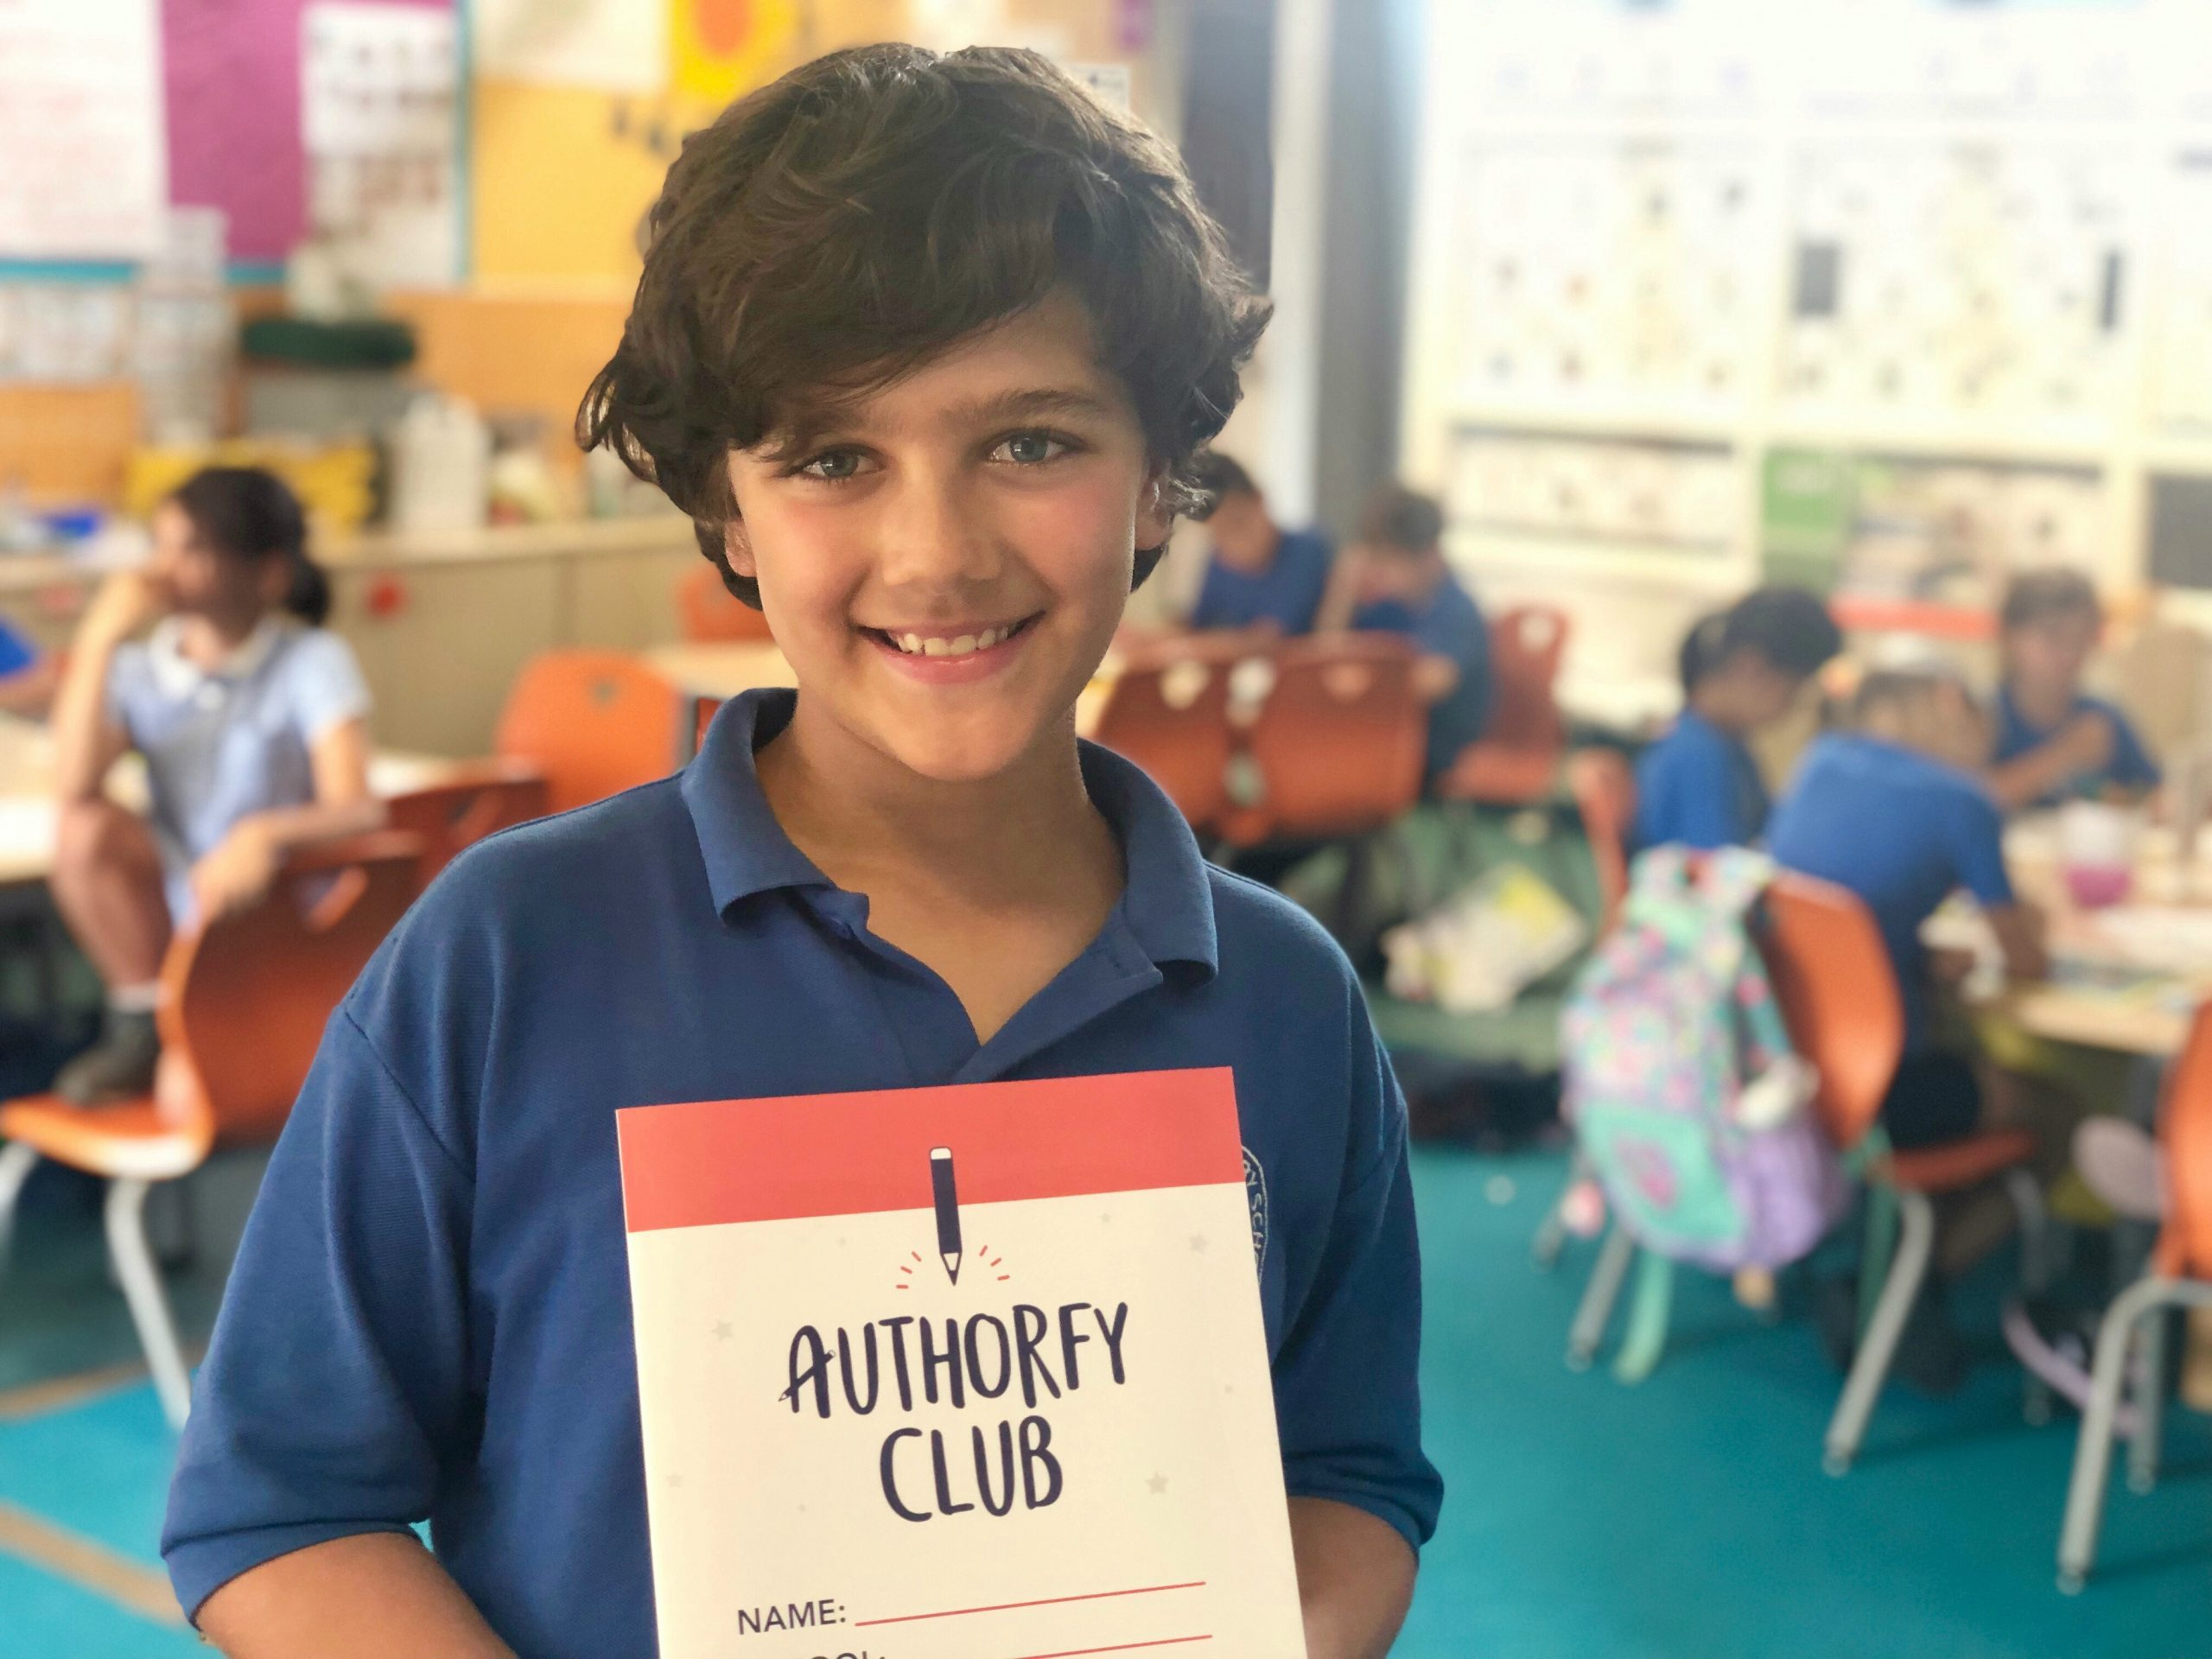 Authorfy Club